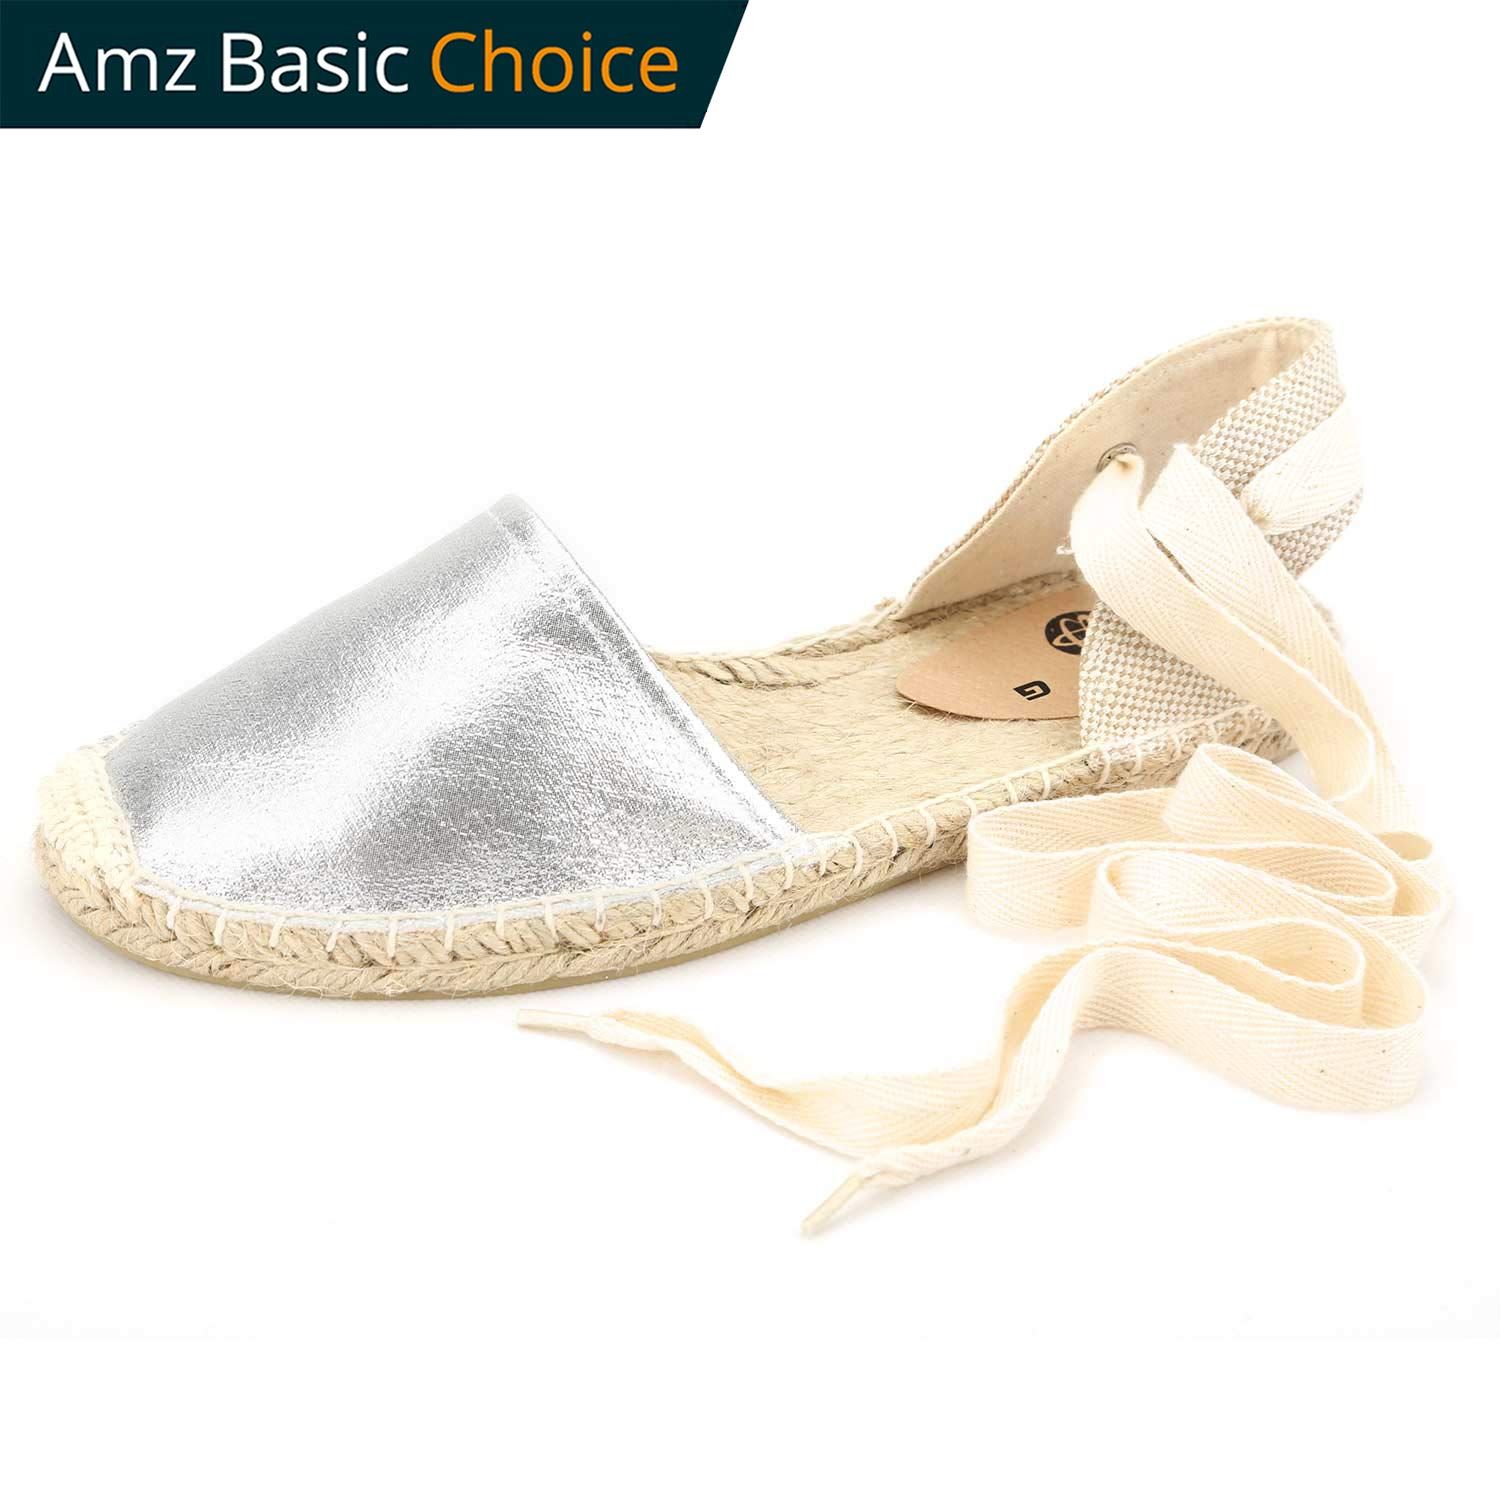 diig Espadrille Sandals for Women, Lace up Sandals Silver Brown Light Gold Navy Tie Ankle Wrap Flat Shoes(Silver, US-10)